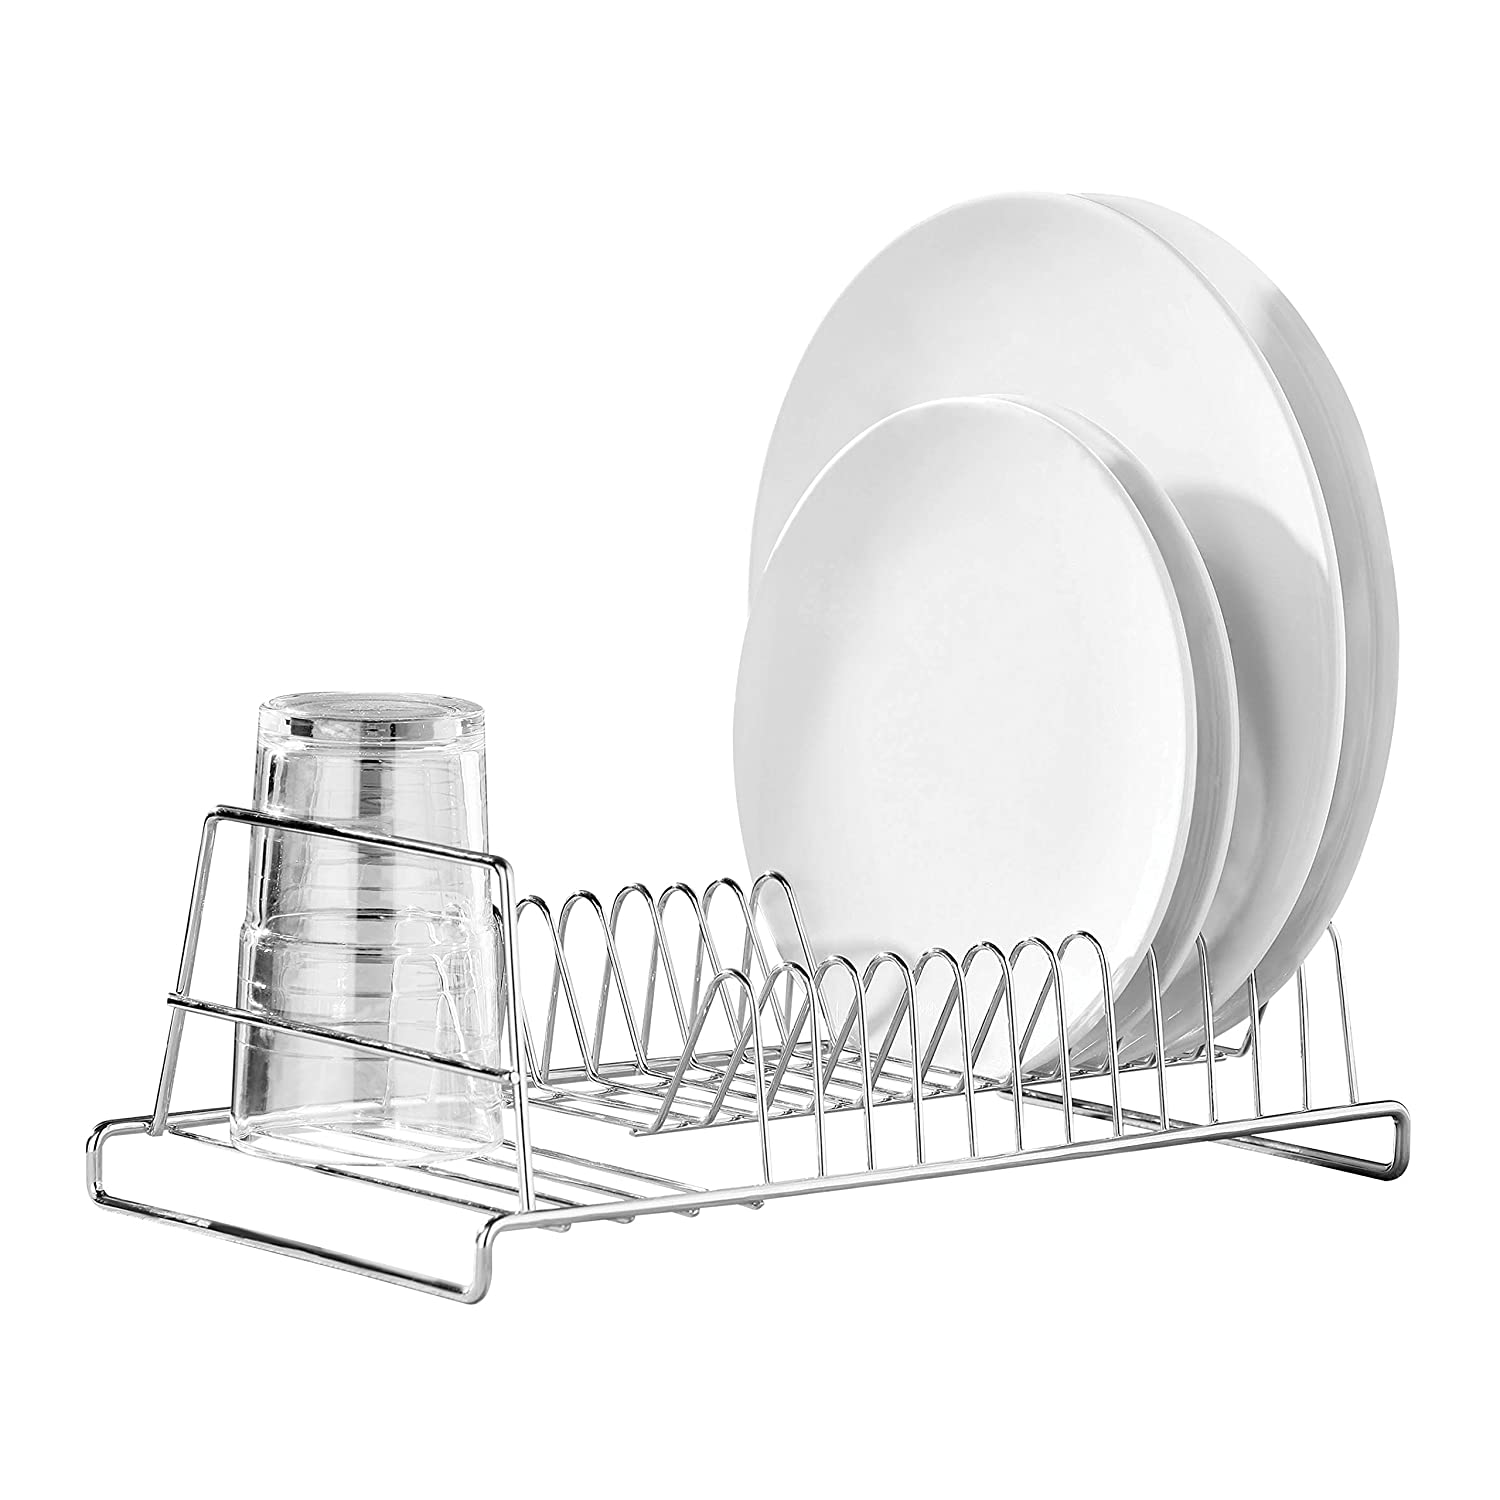 in sink dish rack dish drainer rack cutlery crockery dryer unit kitchen 30437